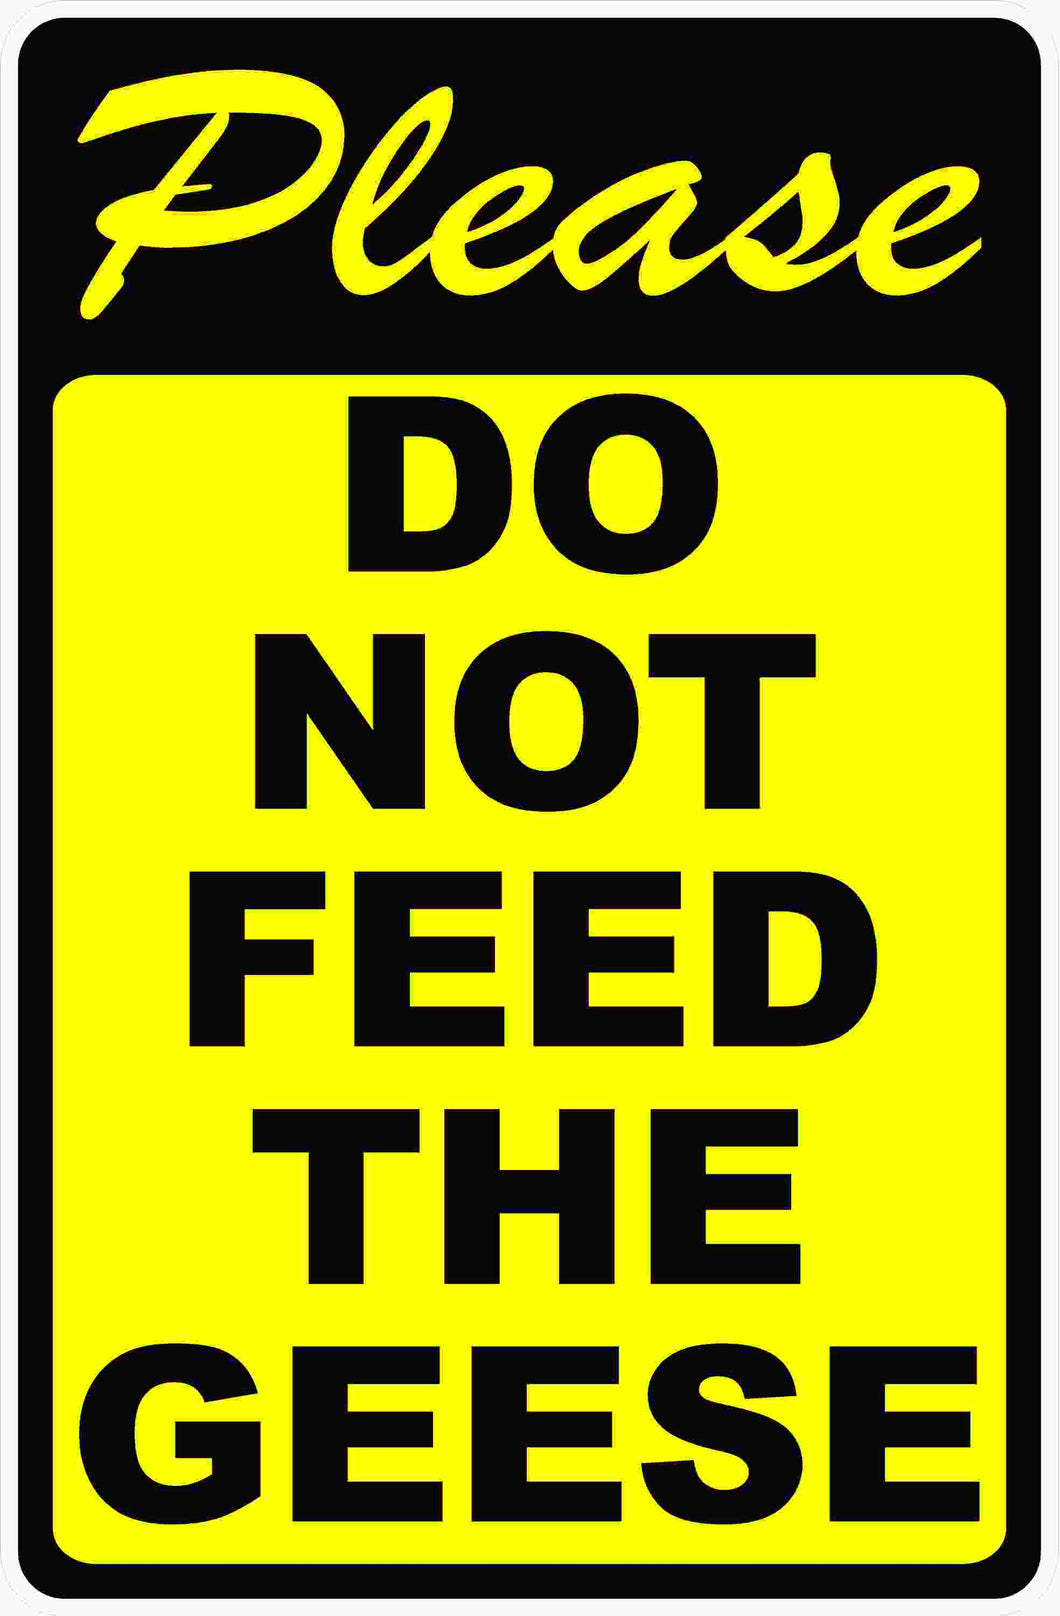 Do Not Feed Geese Sign